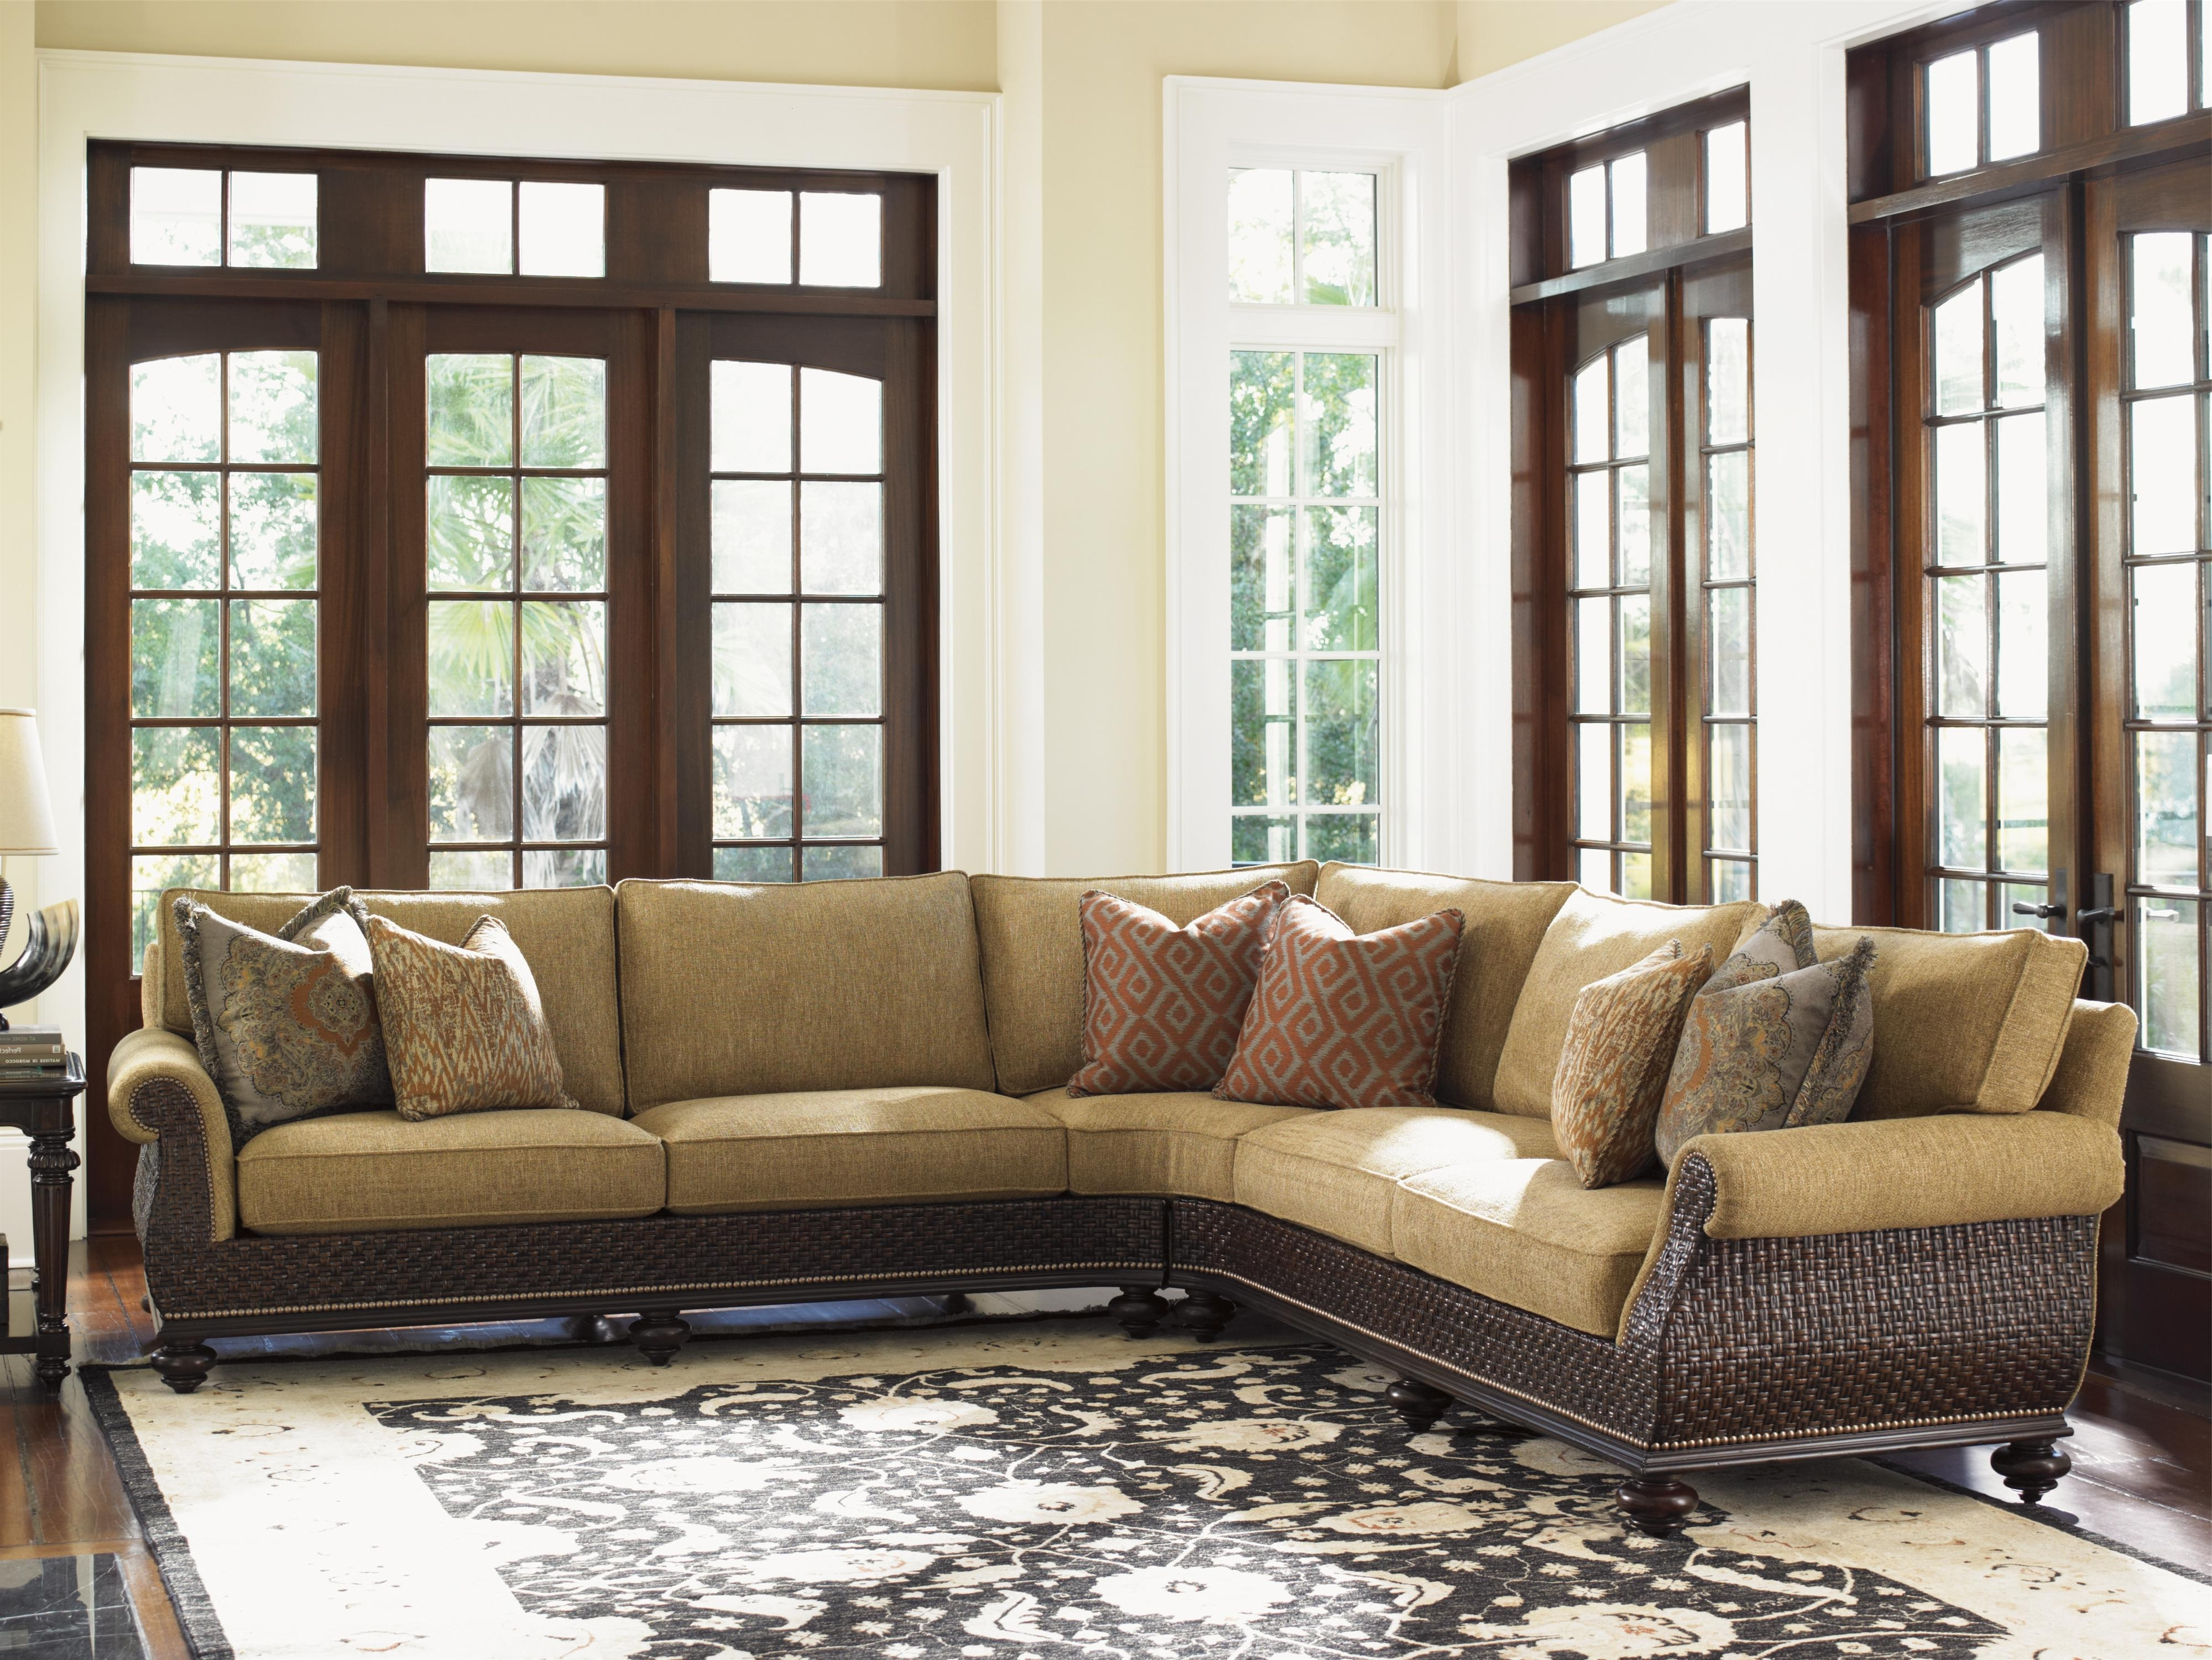 Most Popular Kitchener Sectional Sofas Inside Tommy Bahama Home Island Traditions Westbury Sectional Sofa With (View 15 of 15)